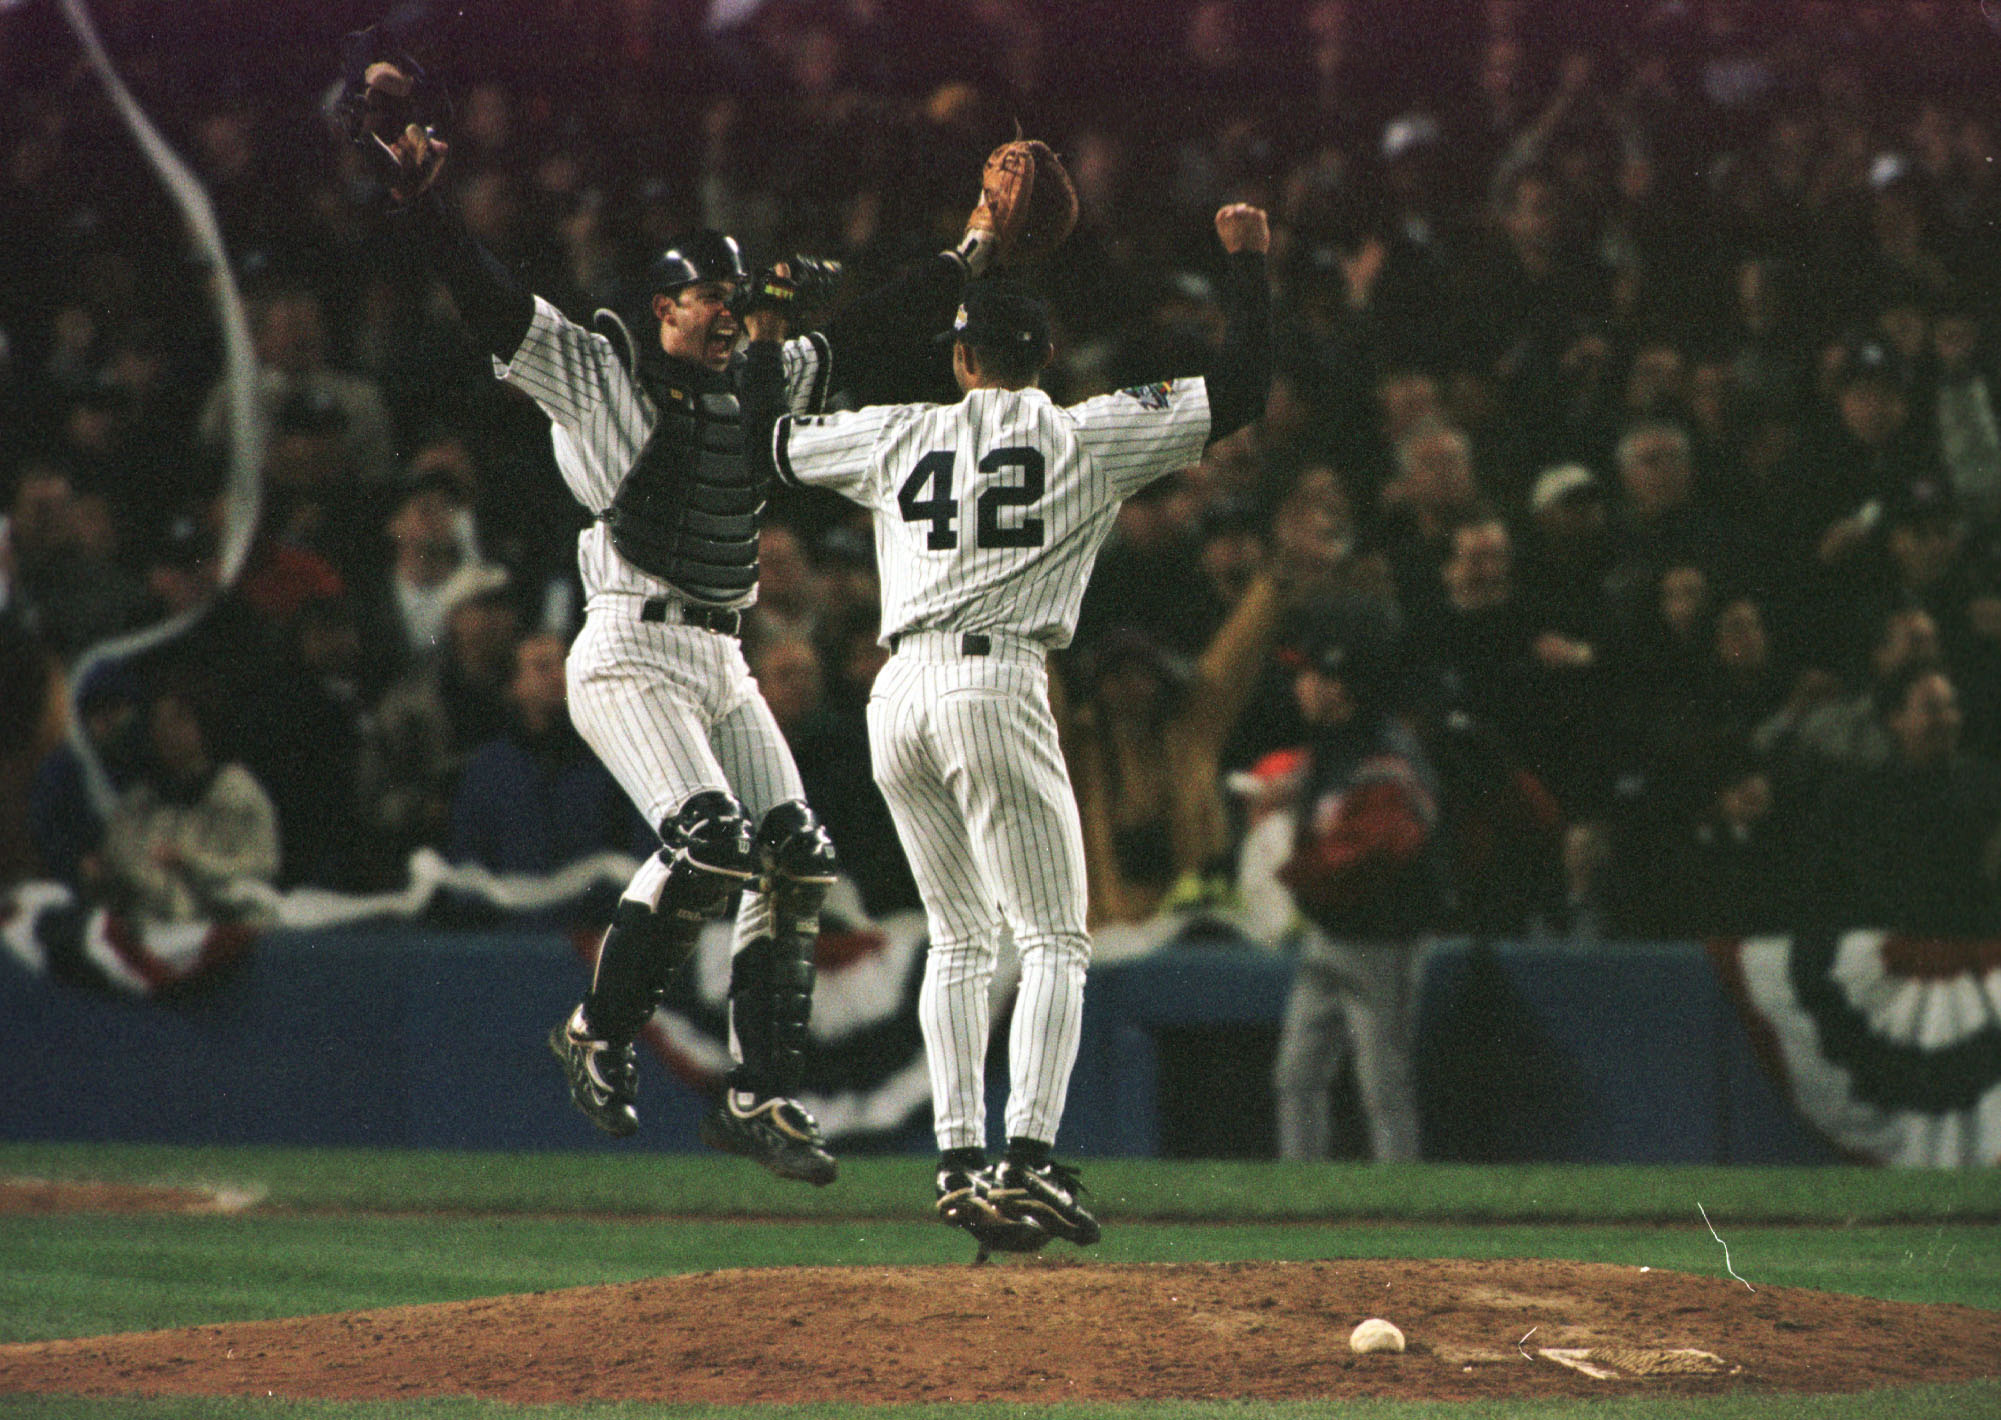 aa0162235 27 Oct 1999: Catcher Jorge Posada of the New York Yankees leaps into the air